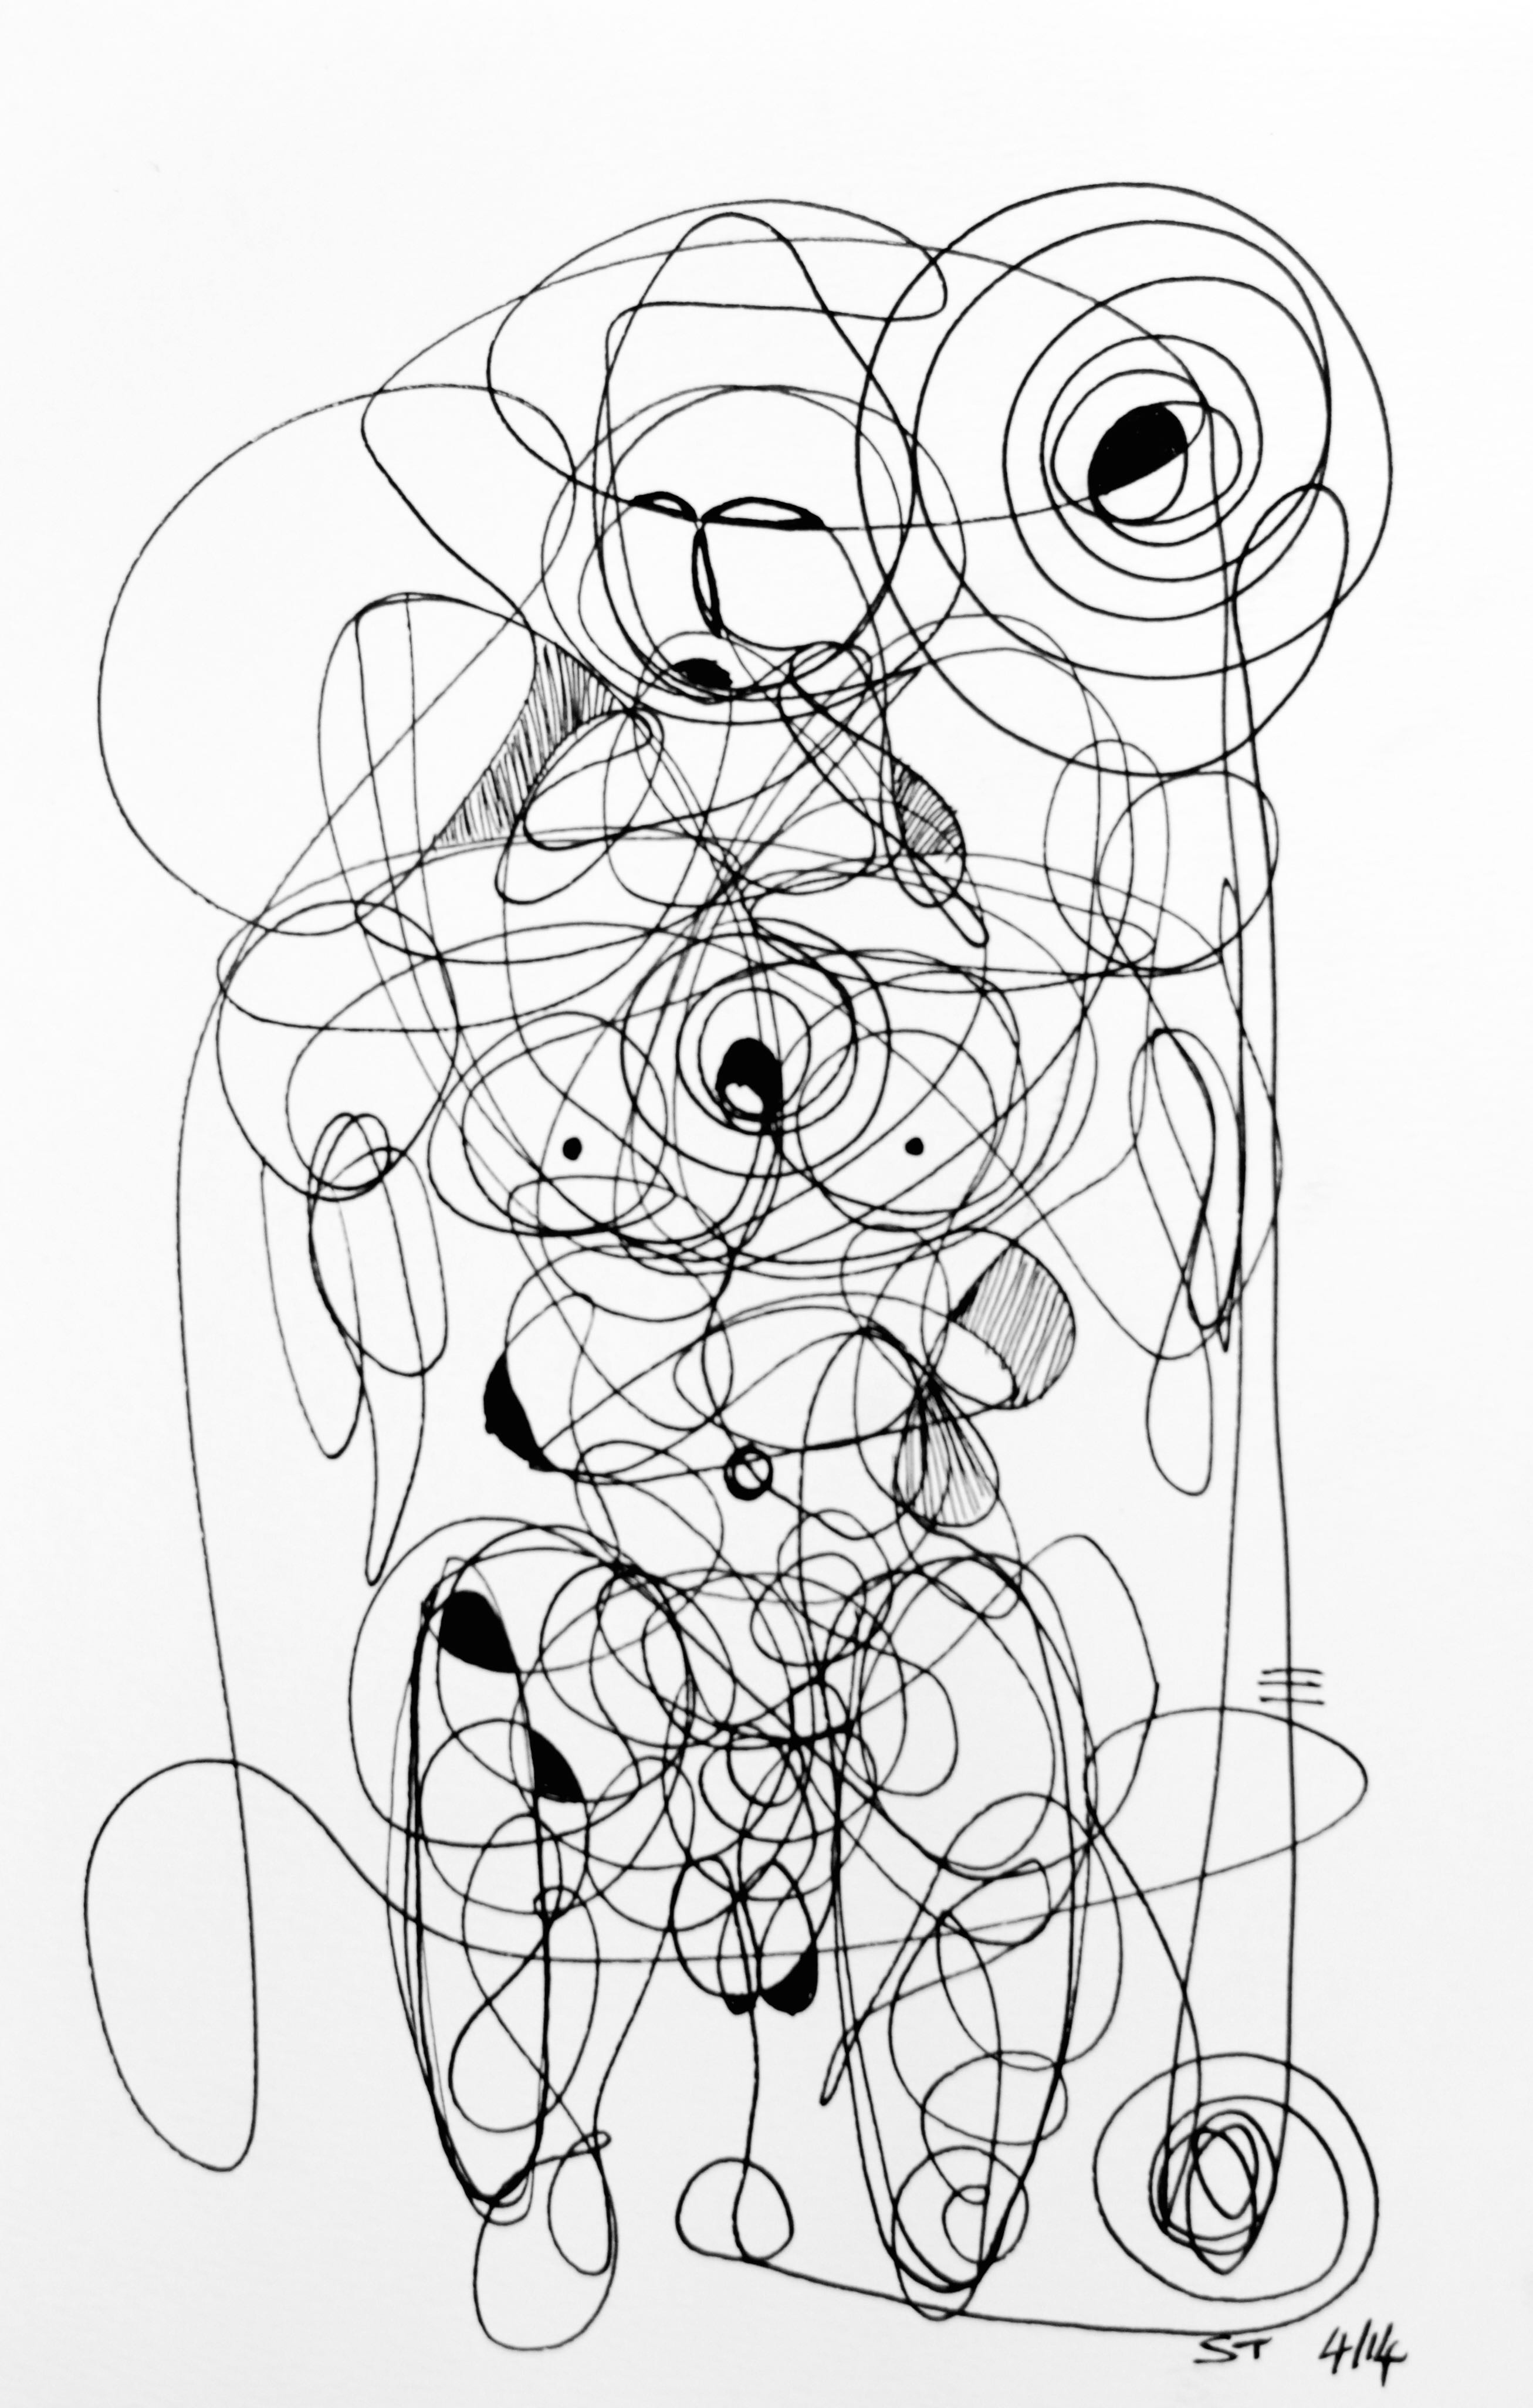 Continual-line drawing - 12